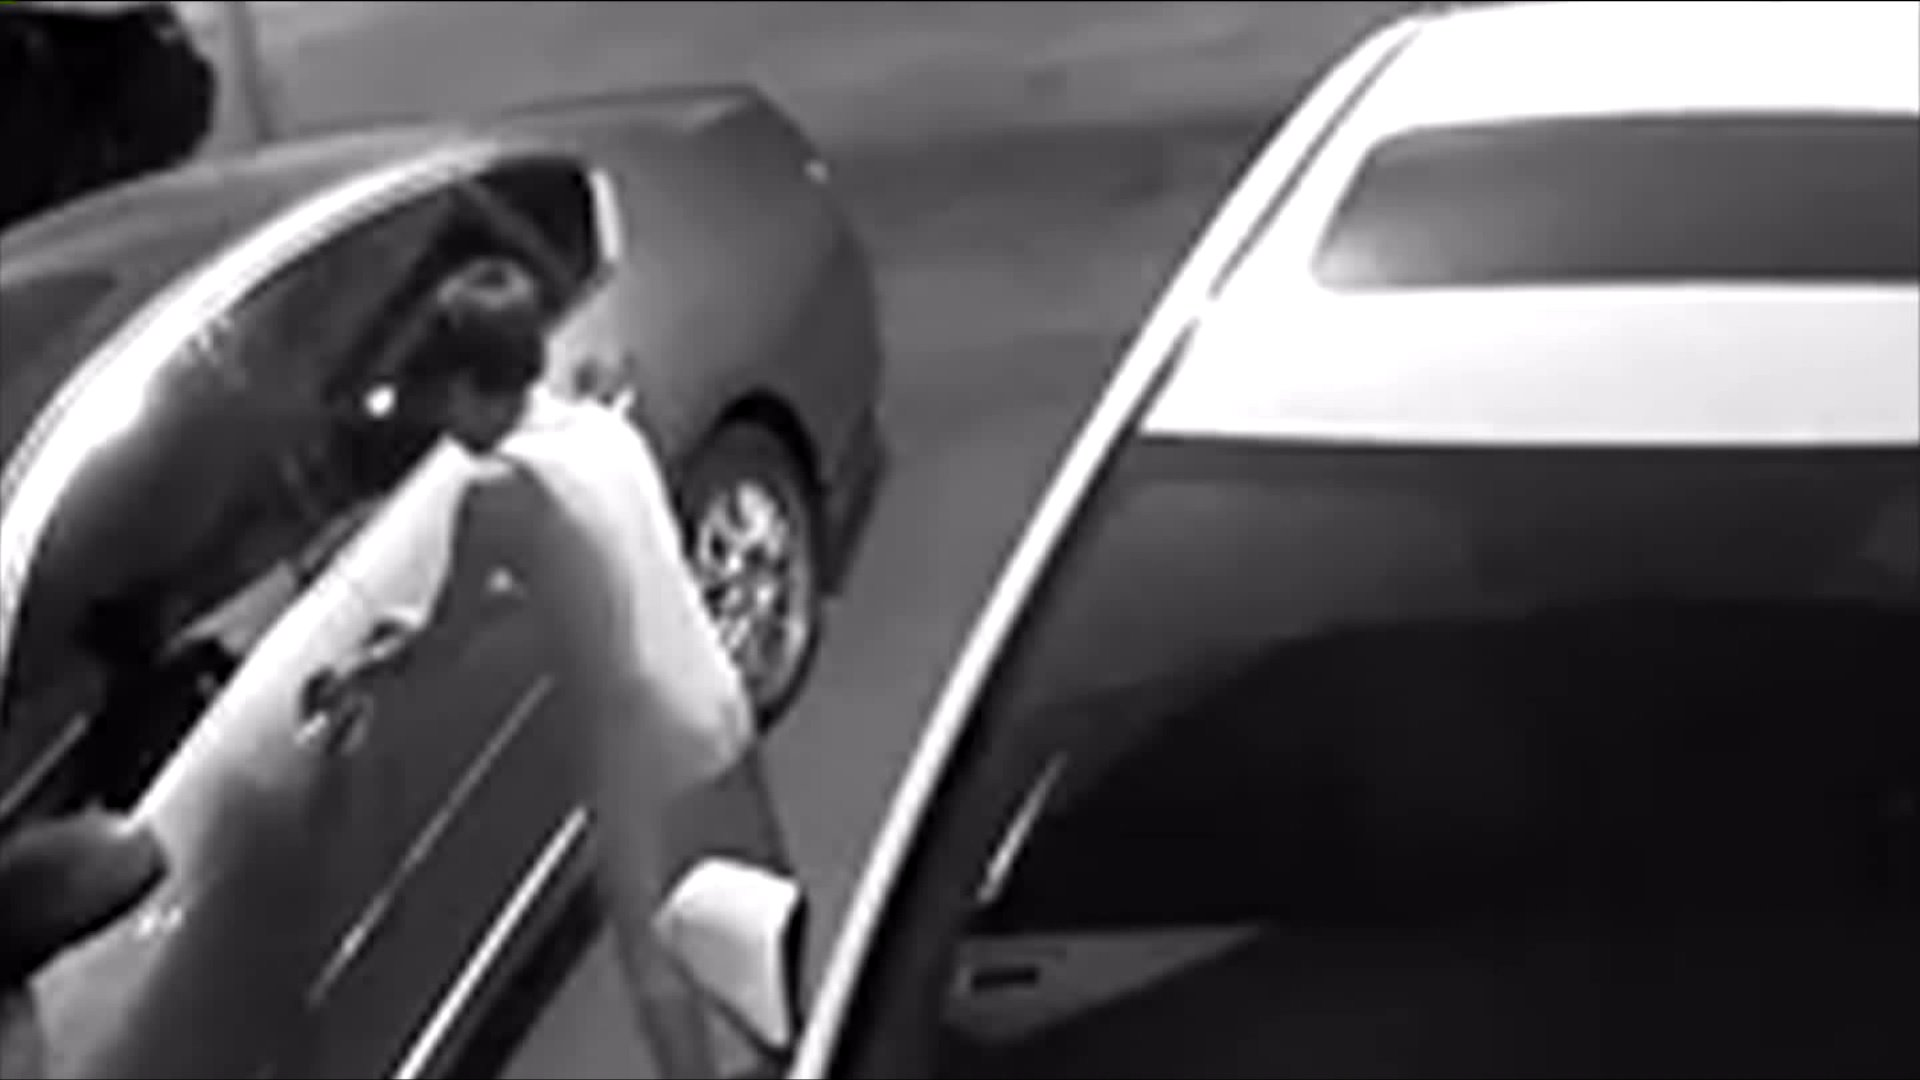 A still from security footage shows what appears to be a child trying to break into cars in South Gate. (Credit: KTLA)